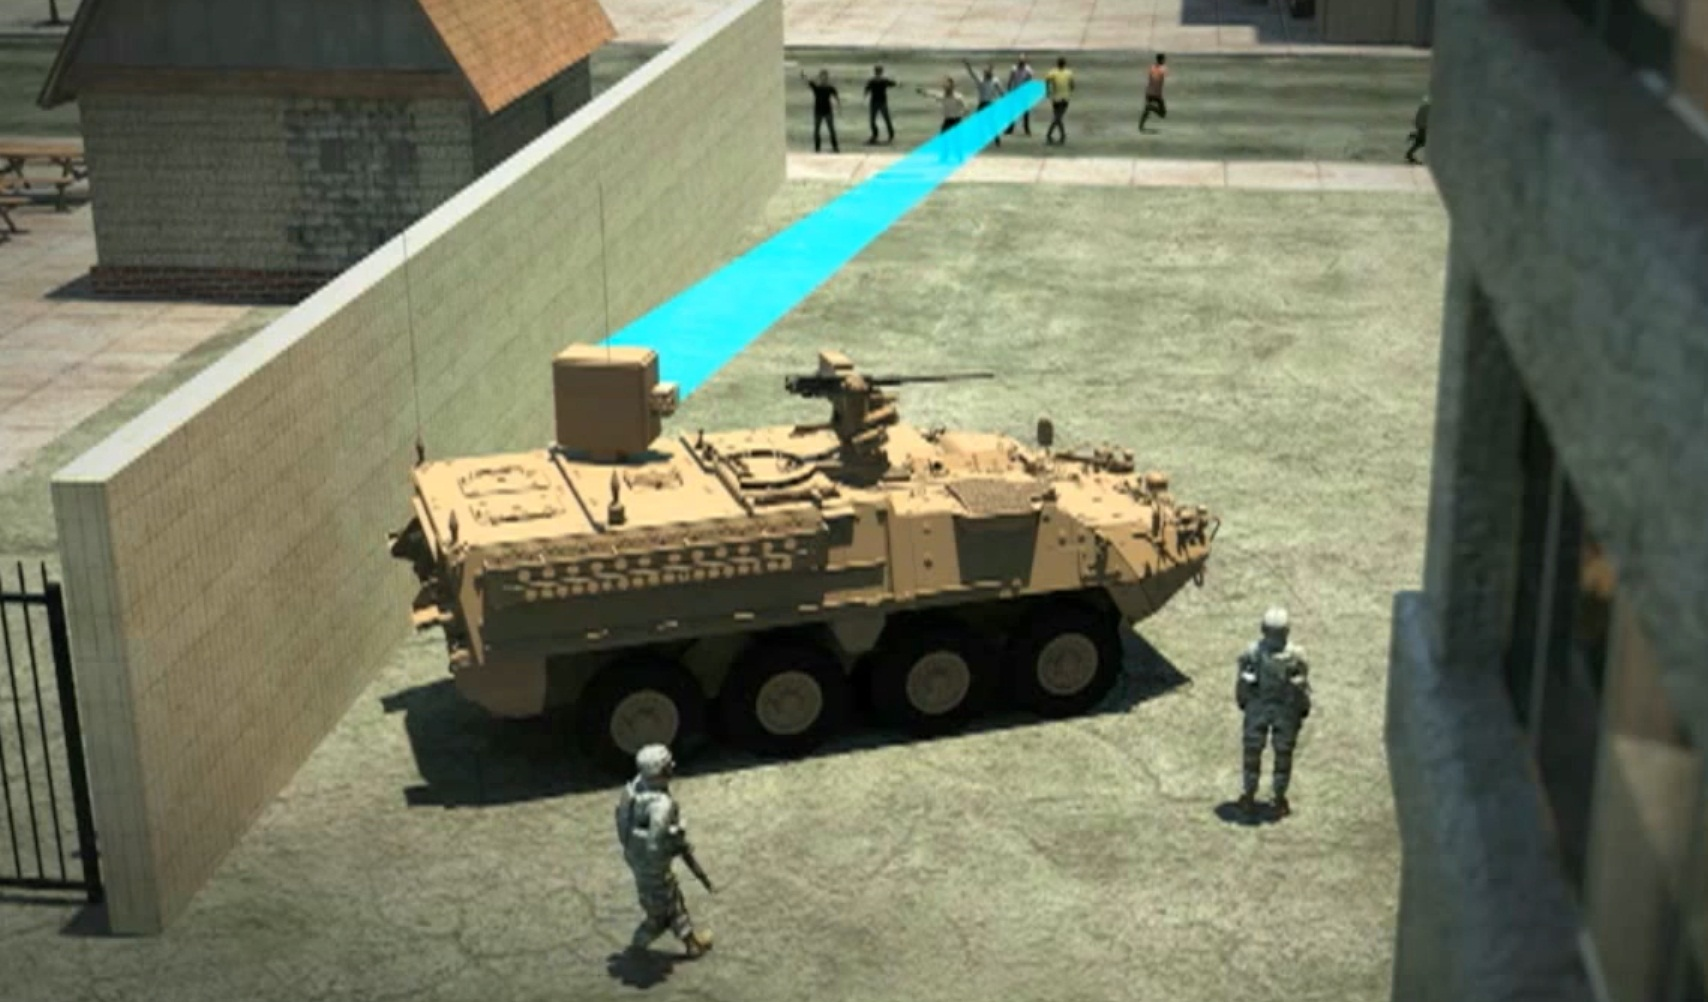 U.S. Army to be deployed Electromagnetic Radiation Weapon on Vehicle